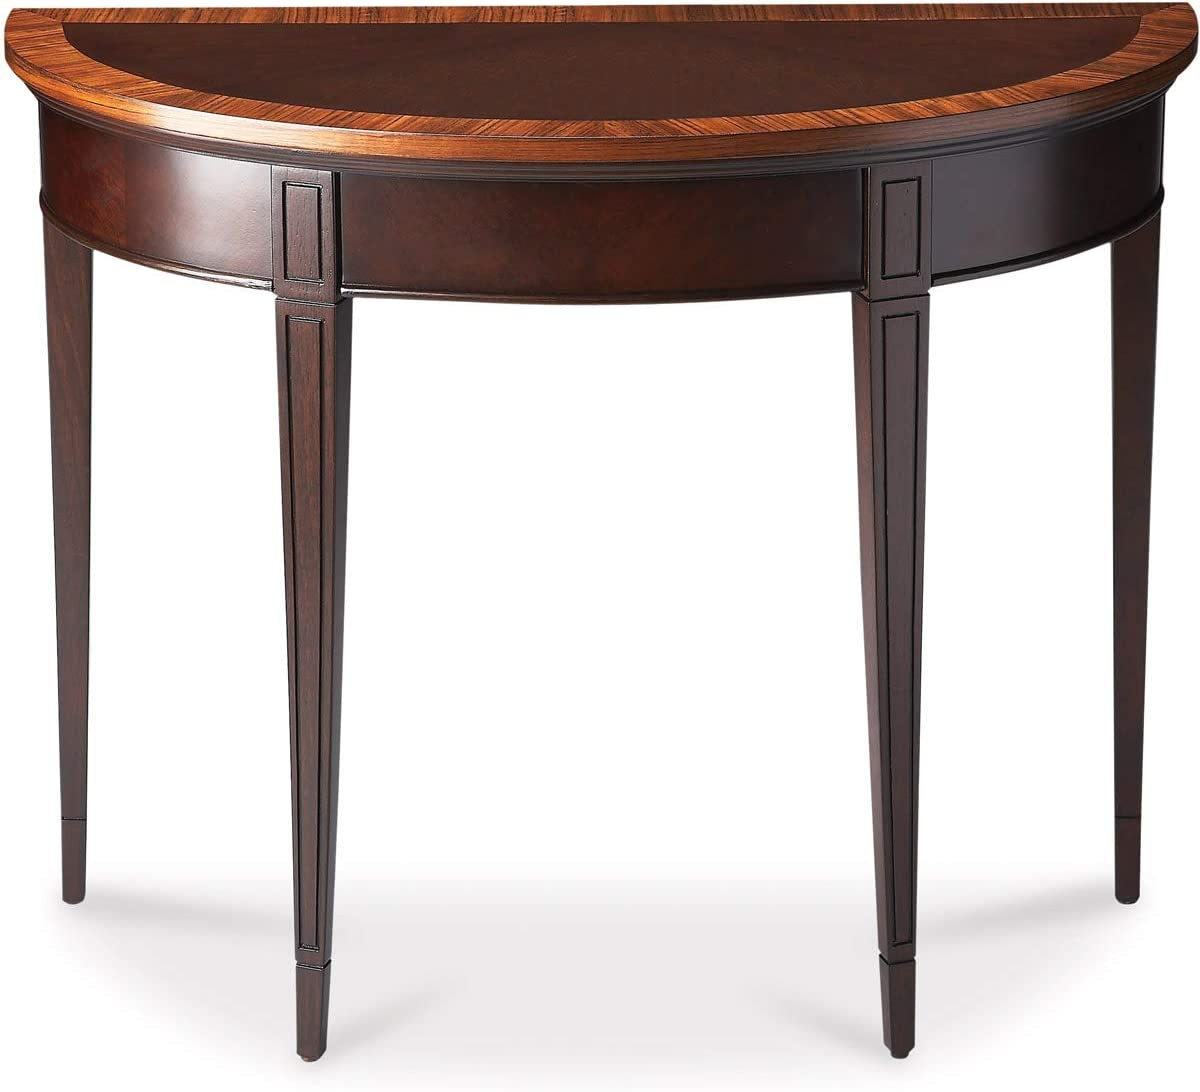 BUTLER HAMPTON CHERRY NOUVEAU DEMILUNE CONSOLE TABLE